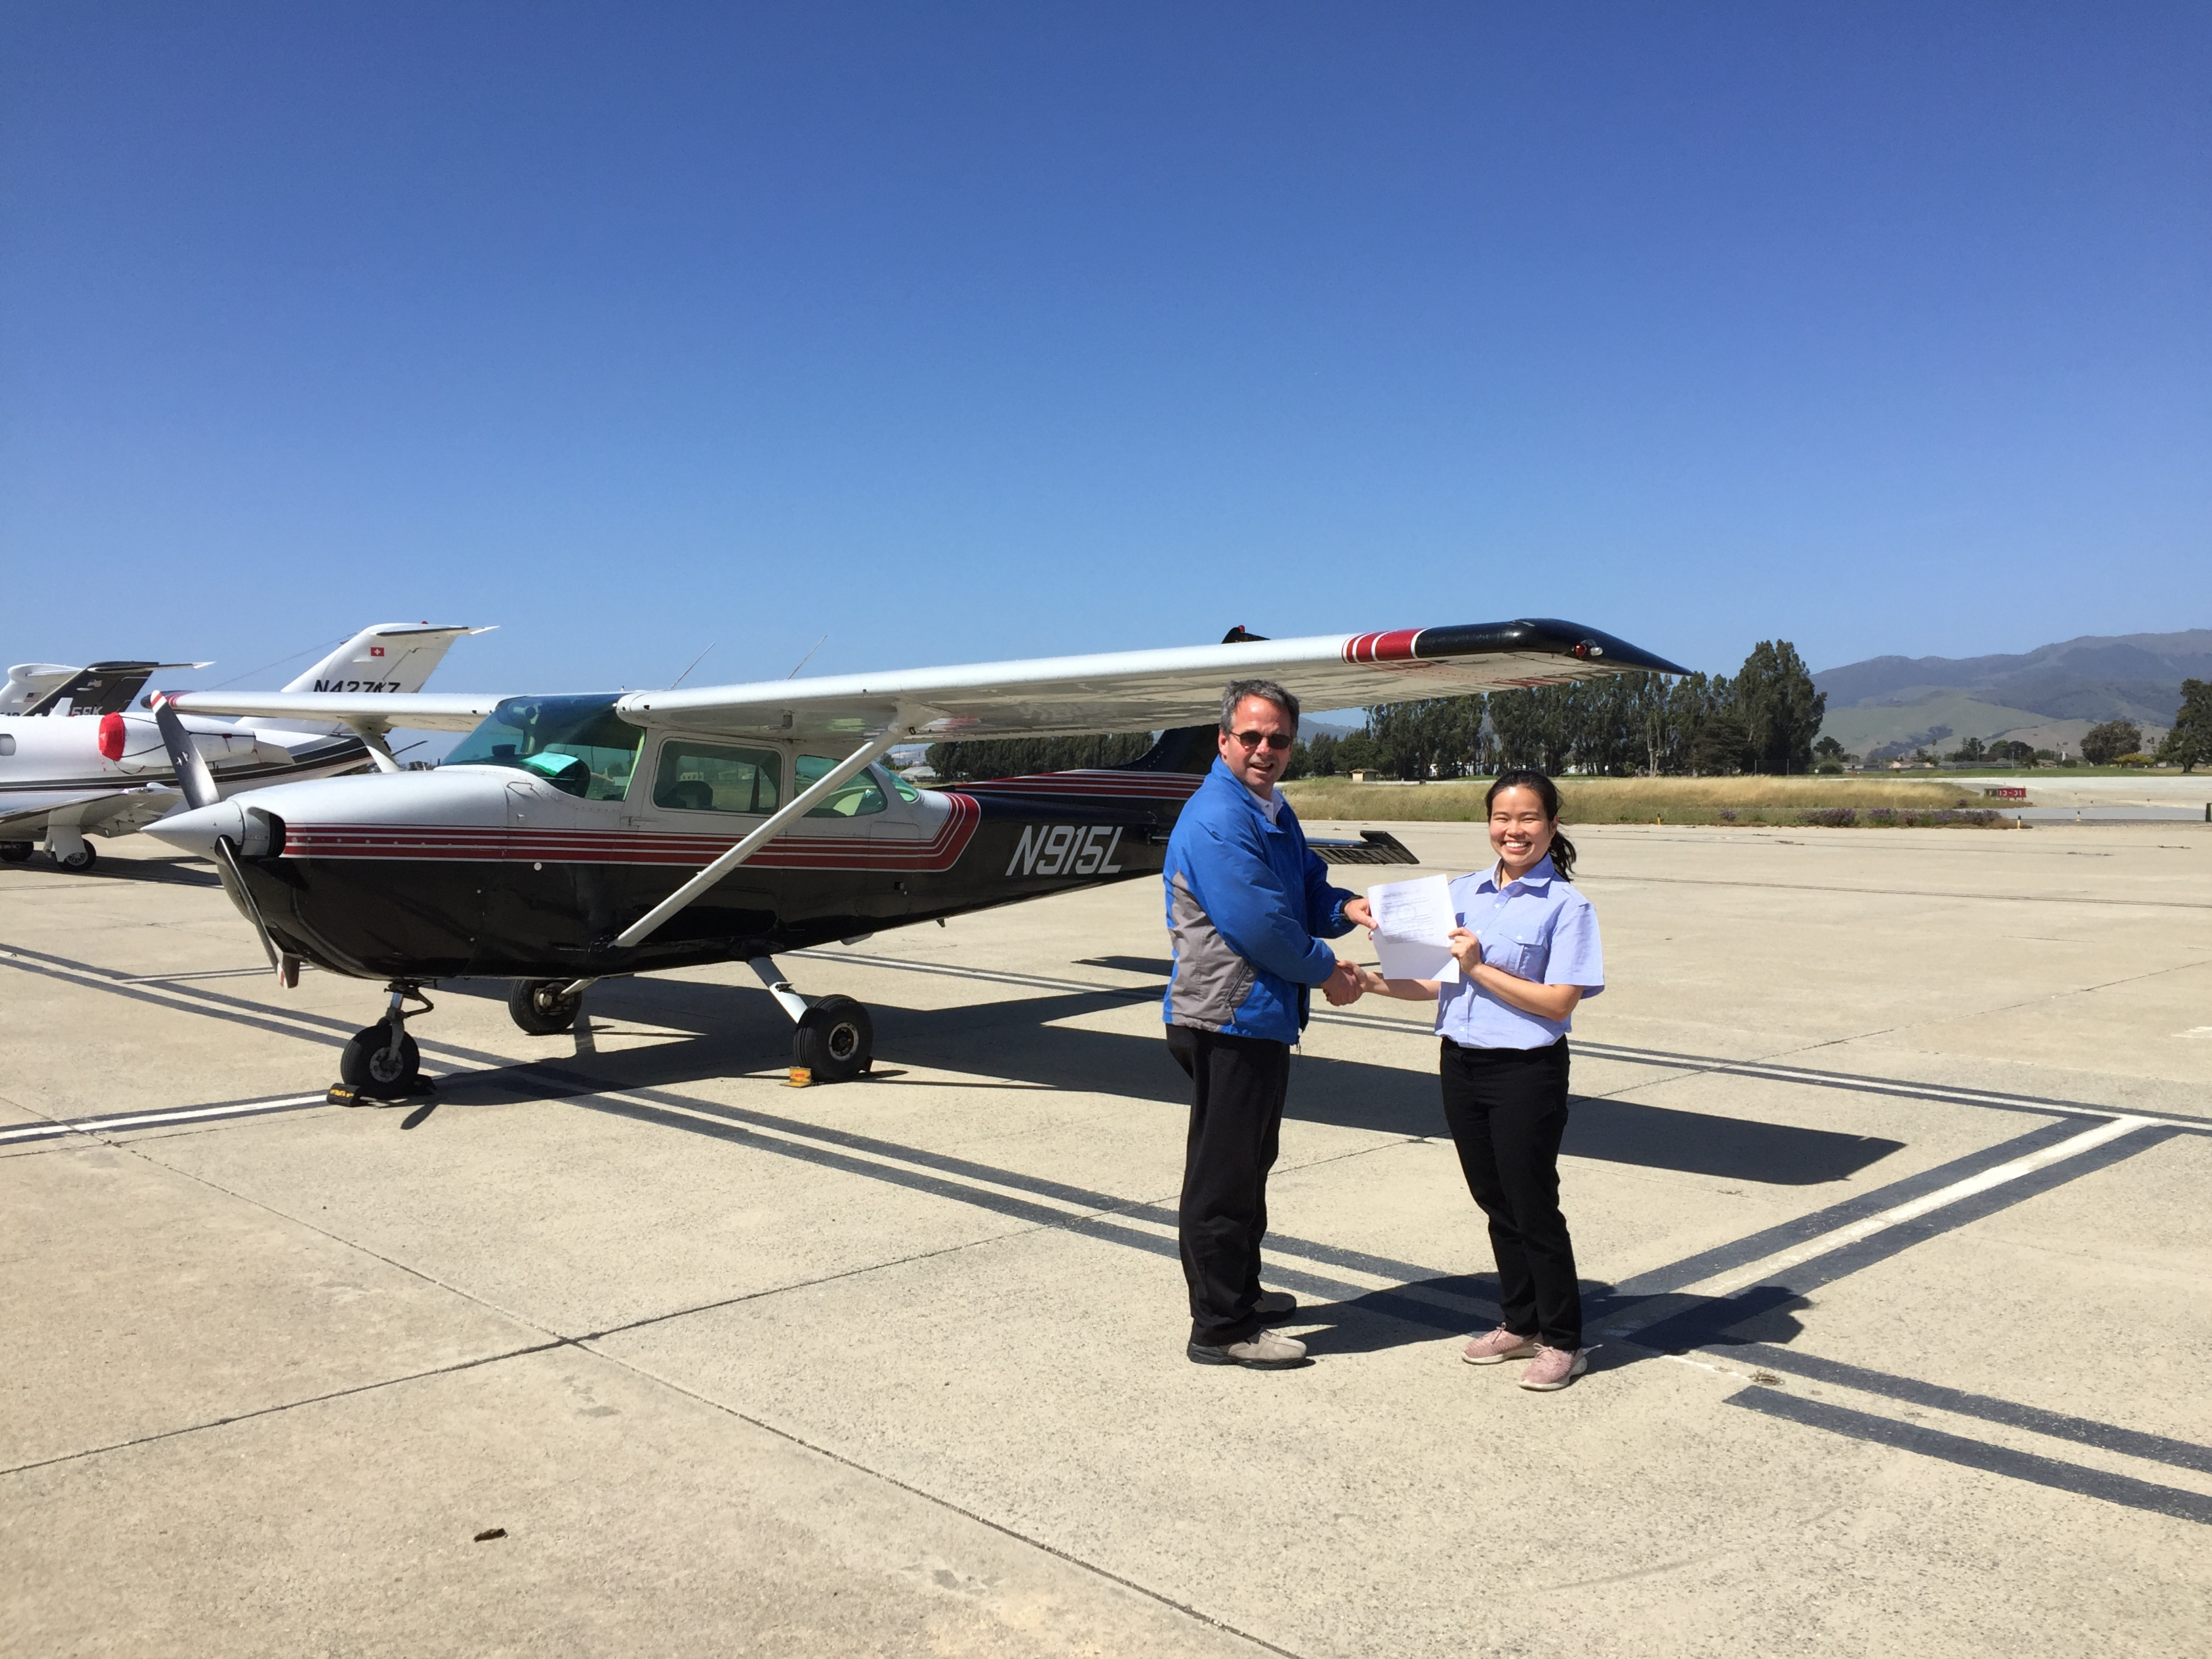 pilot license, checkride, cessna